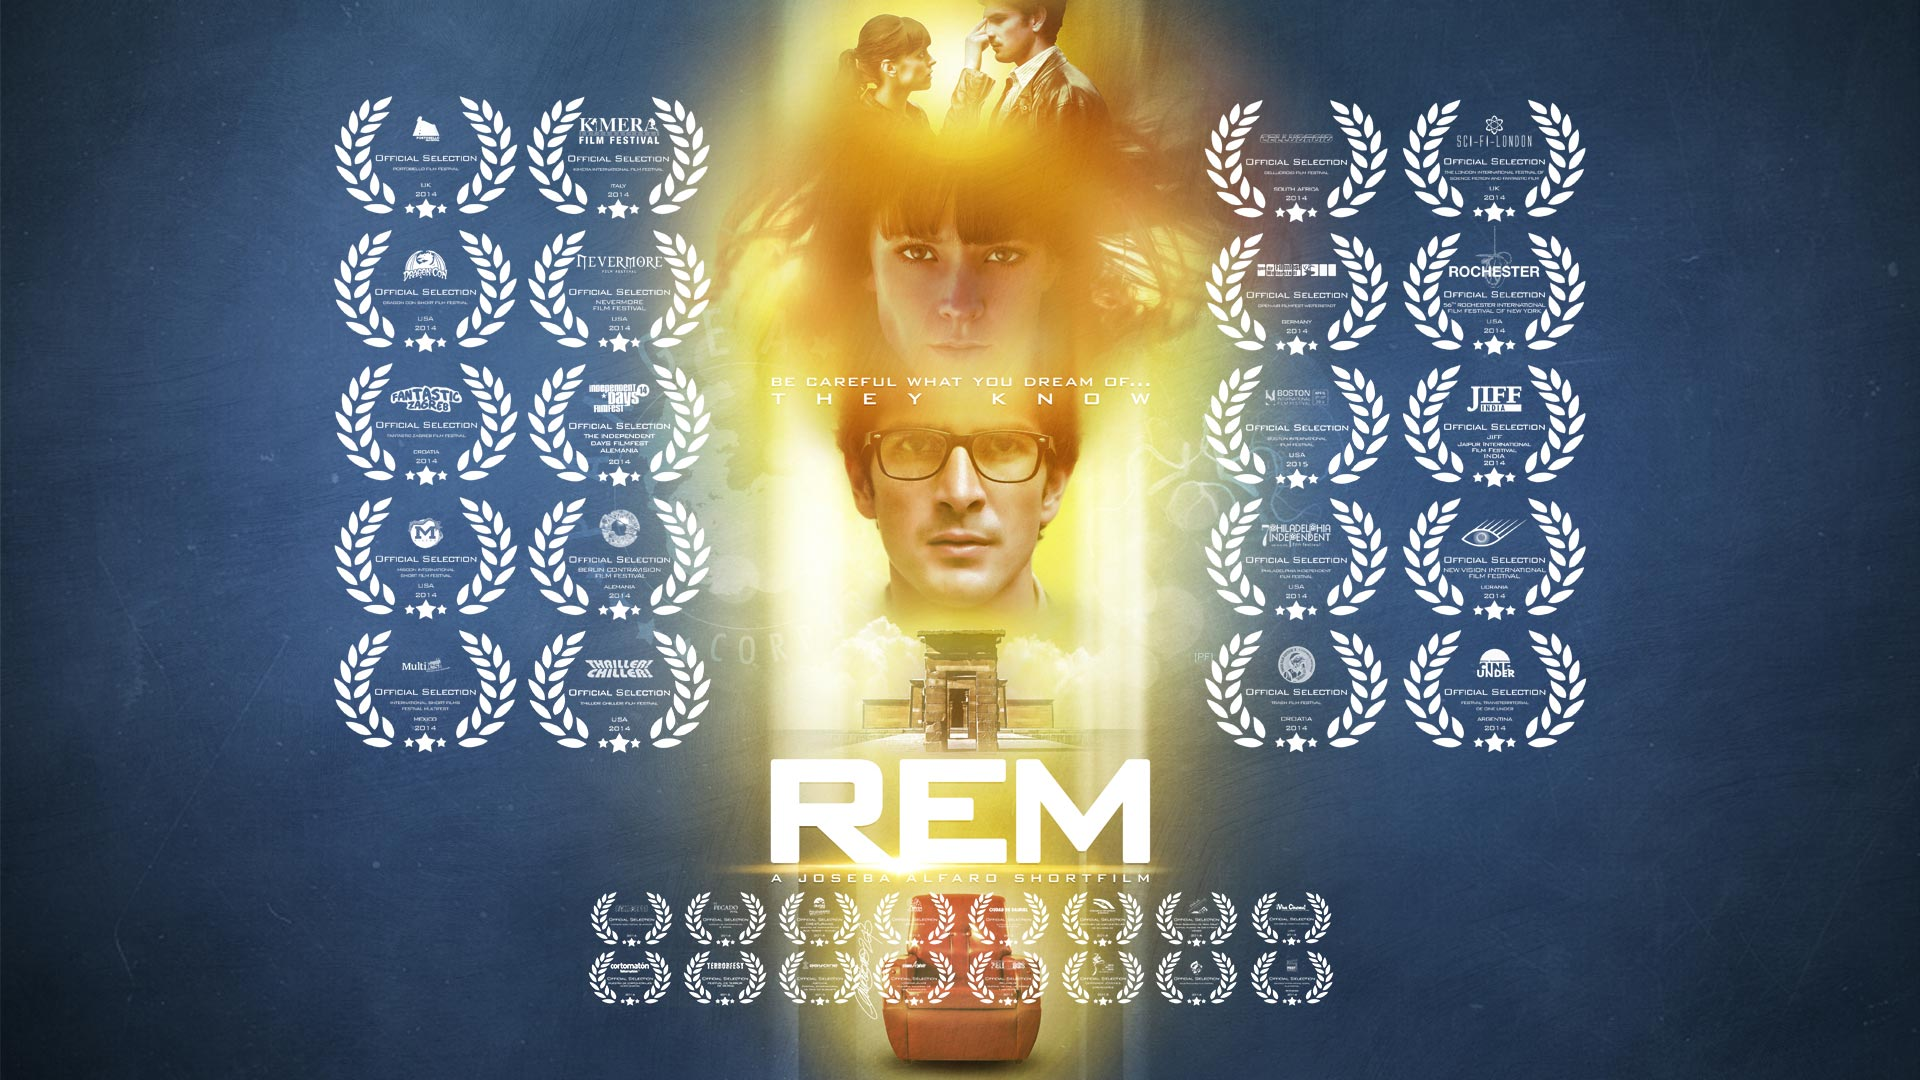 REM Short film